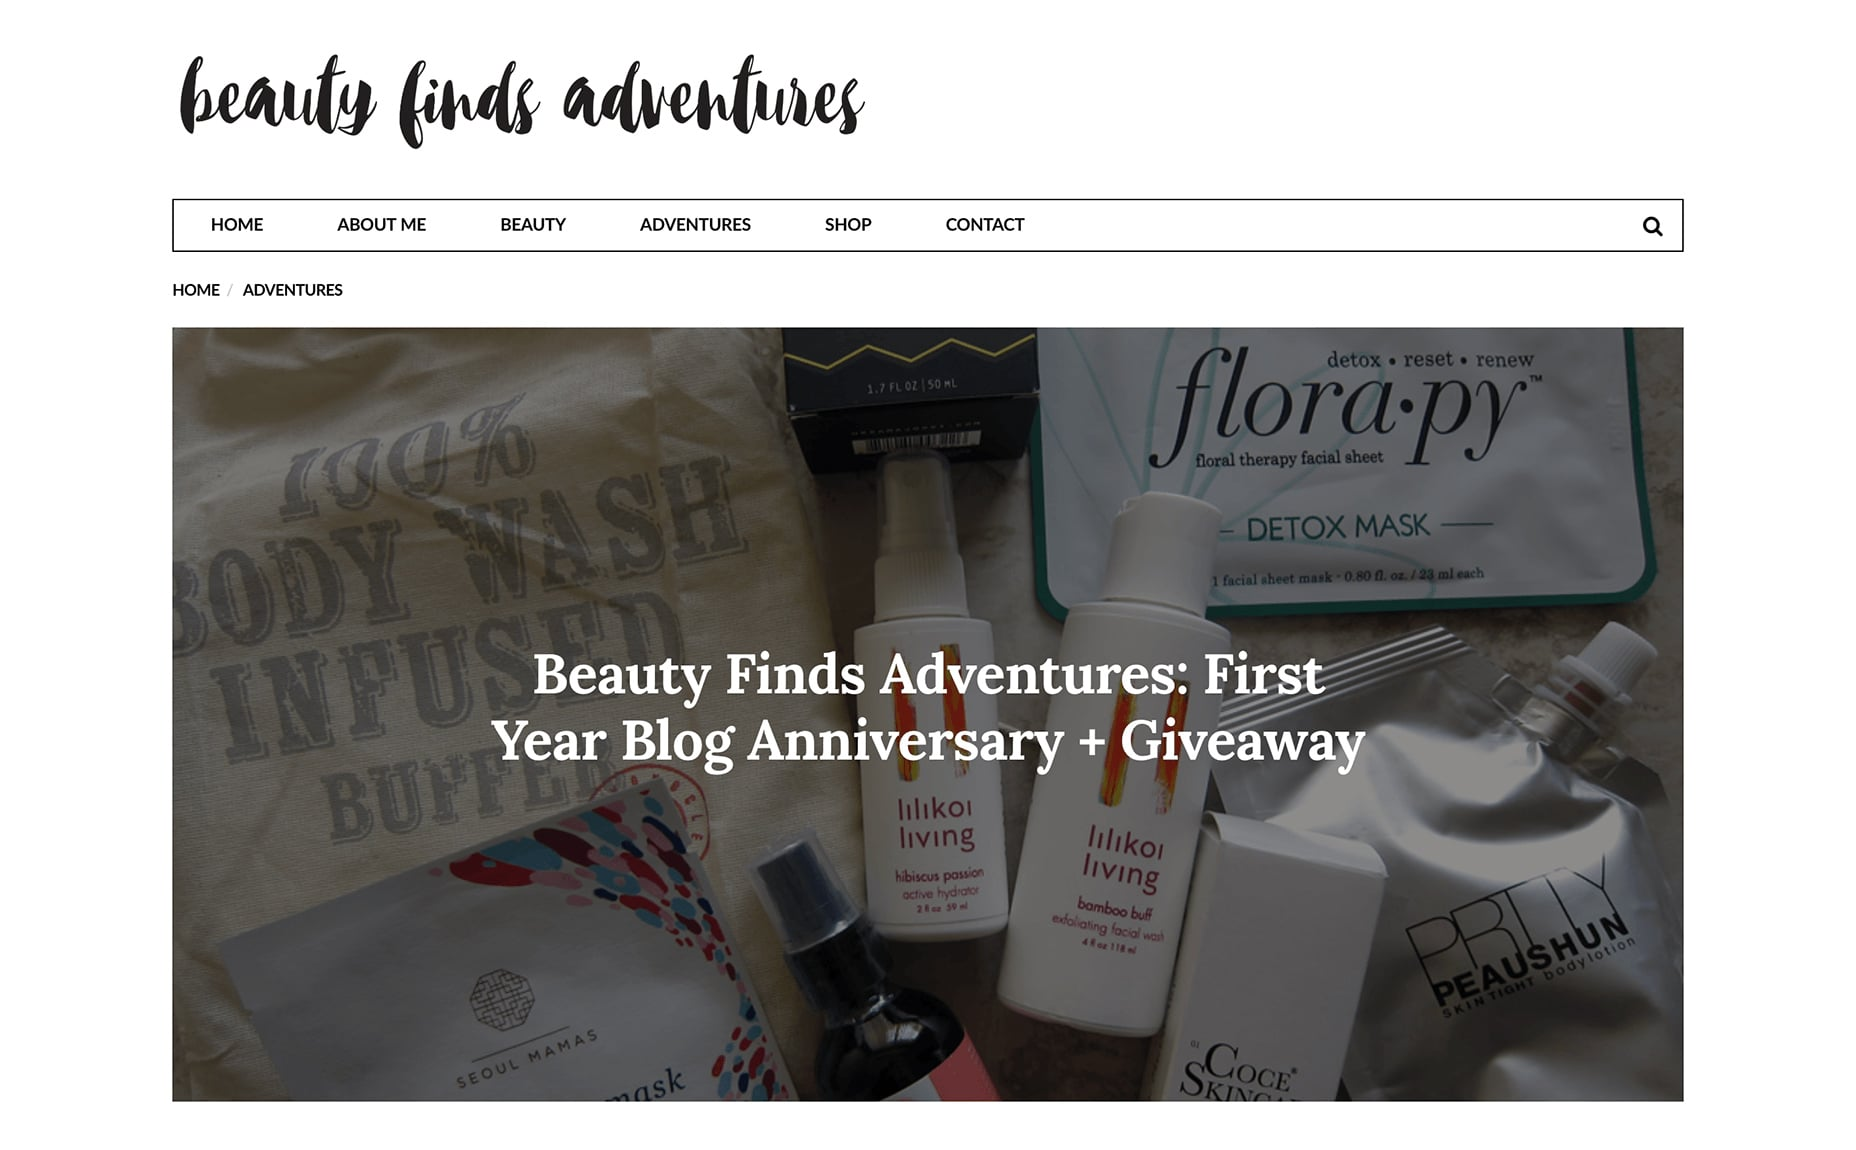 beauty-finds-adventures-blog-giveaway